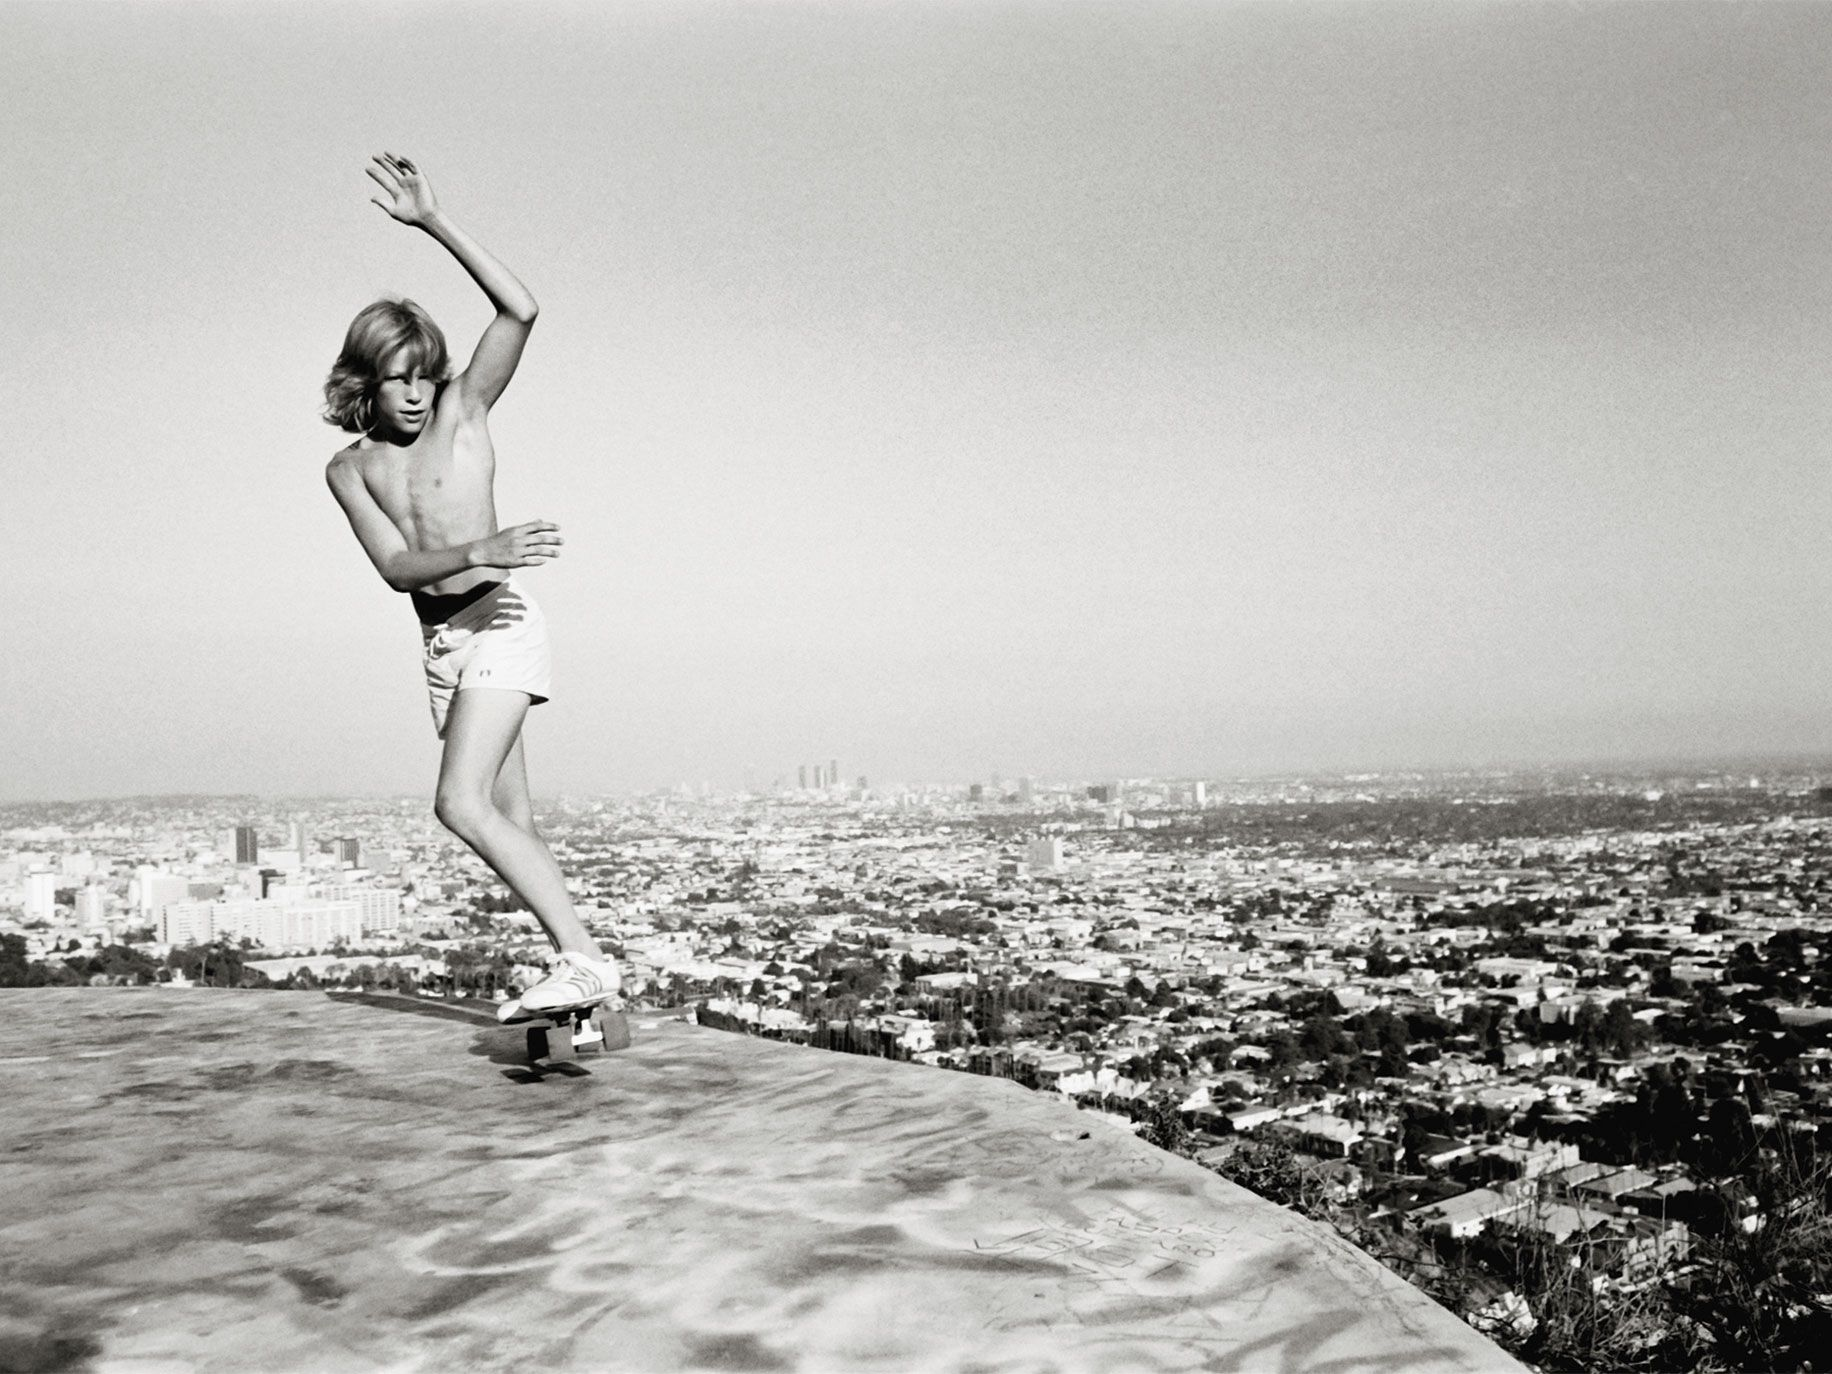 The Top of LA, Hollywood Hills, 1976, from Silver. Skate. 70s.